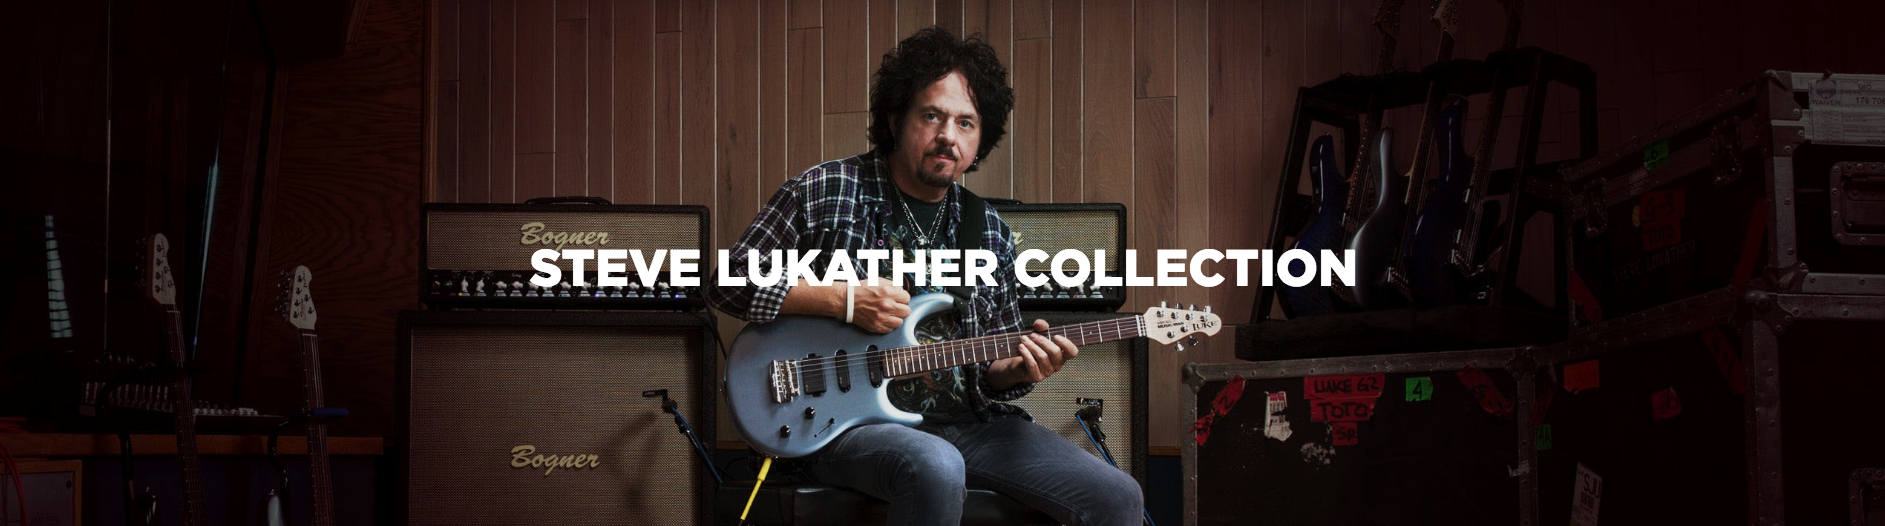 Ernie Ball Steve Lukather Collection